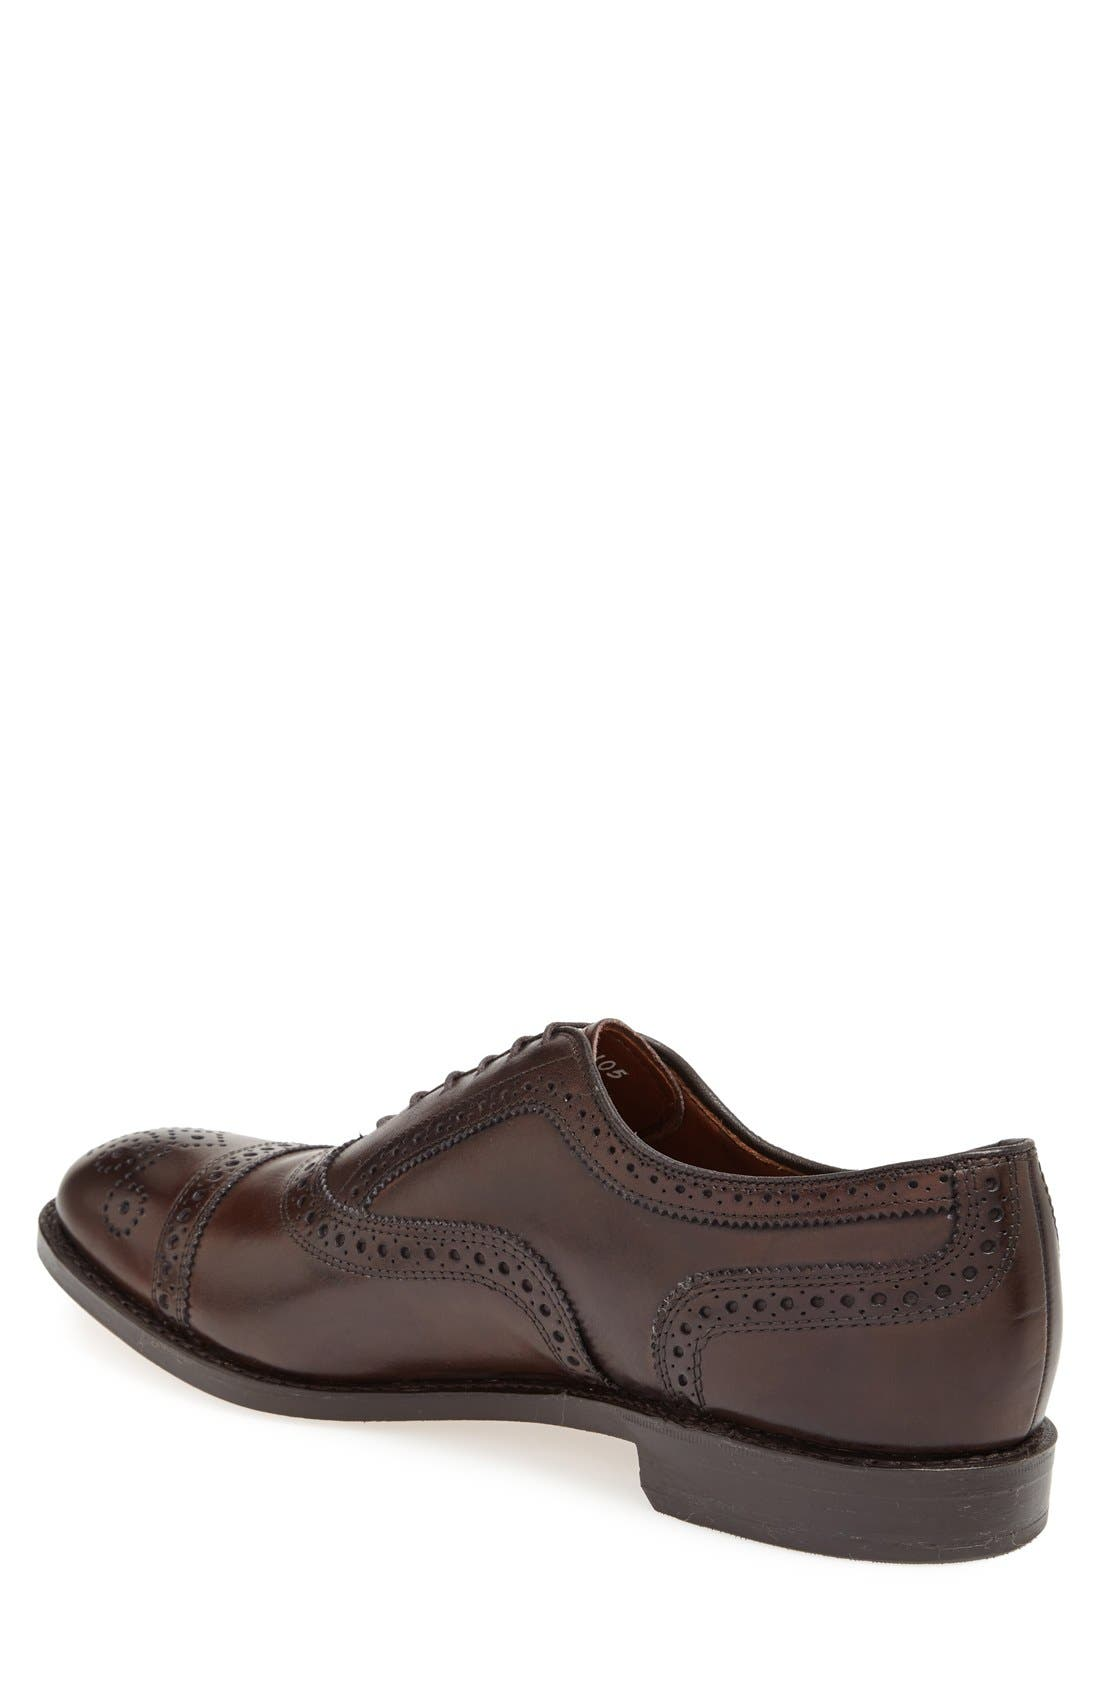 'Strand' Cap Toe Oxford,                             Alternate thumbnail 3, color,                             BROWN BURNISHED CALF